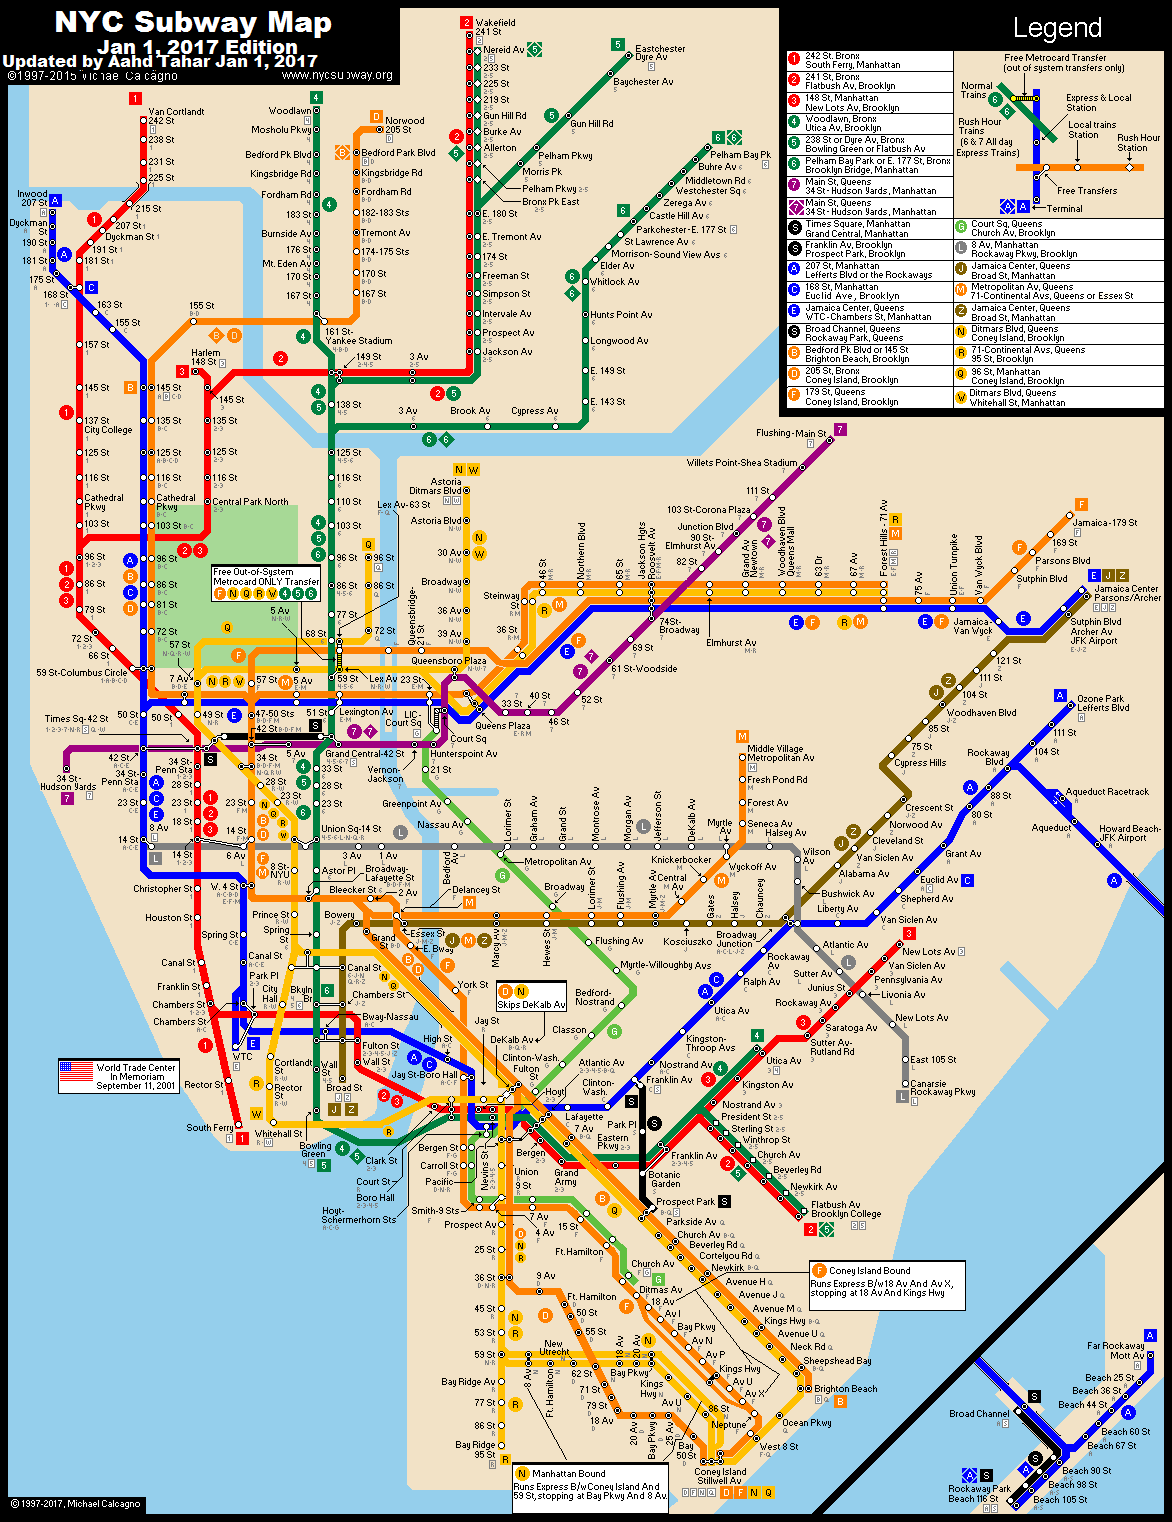 New York City Train Map .nycsubway.org: New York City Subway Route Map by Michael